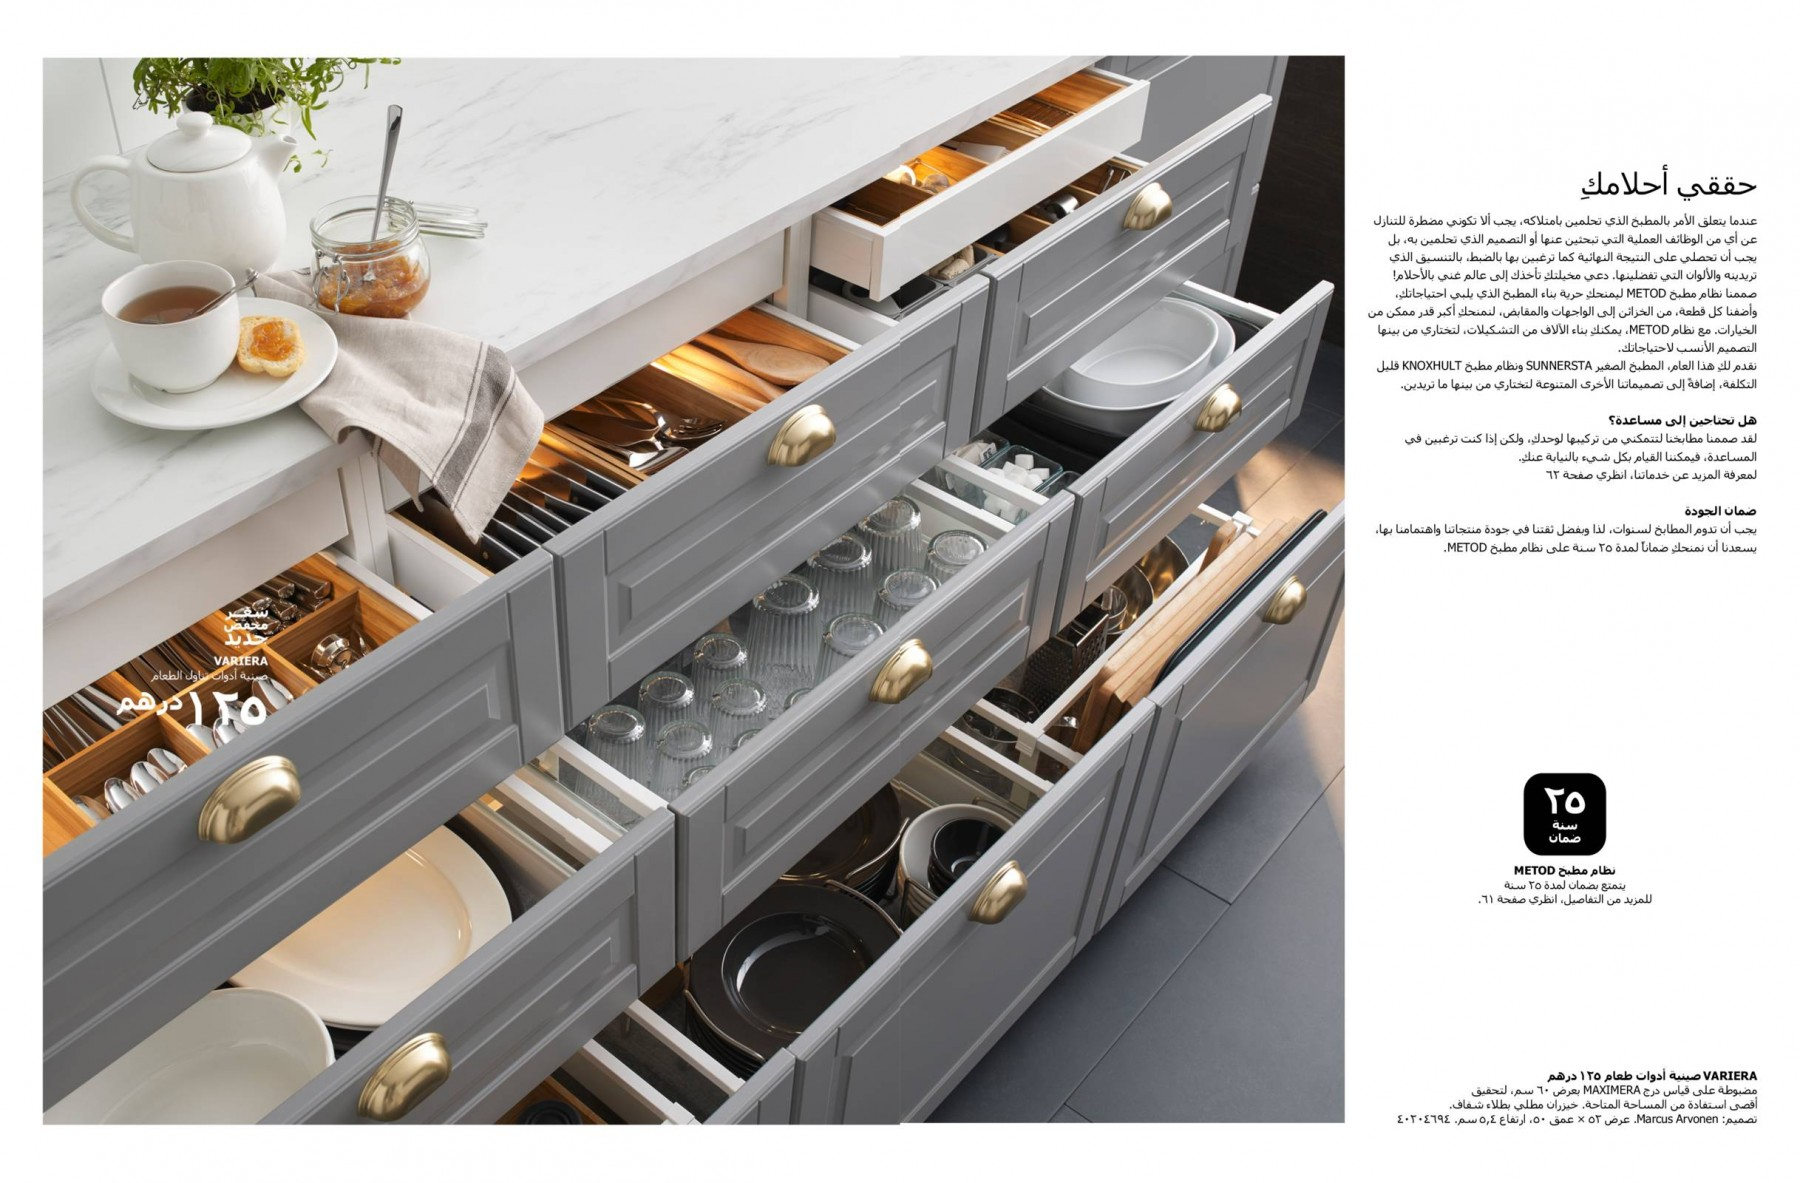 IKEA Offers For Kitchen from IKEA until 31st July  IKEA Offers  Promotions